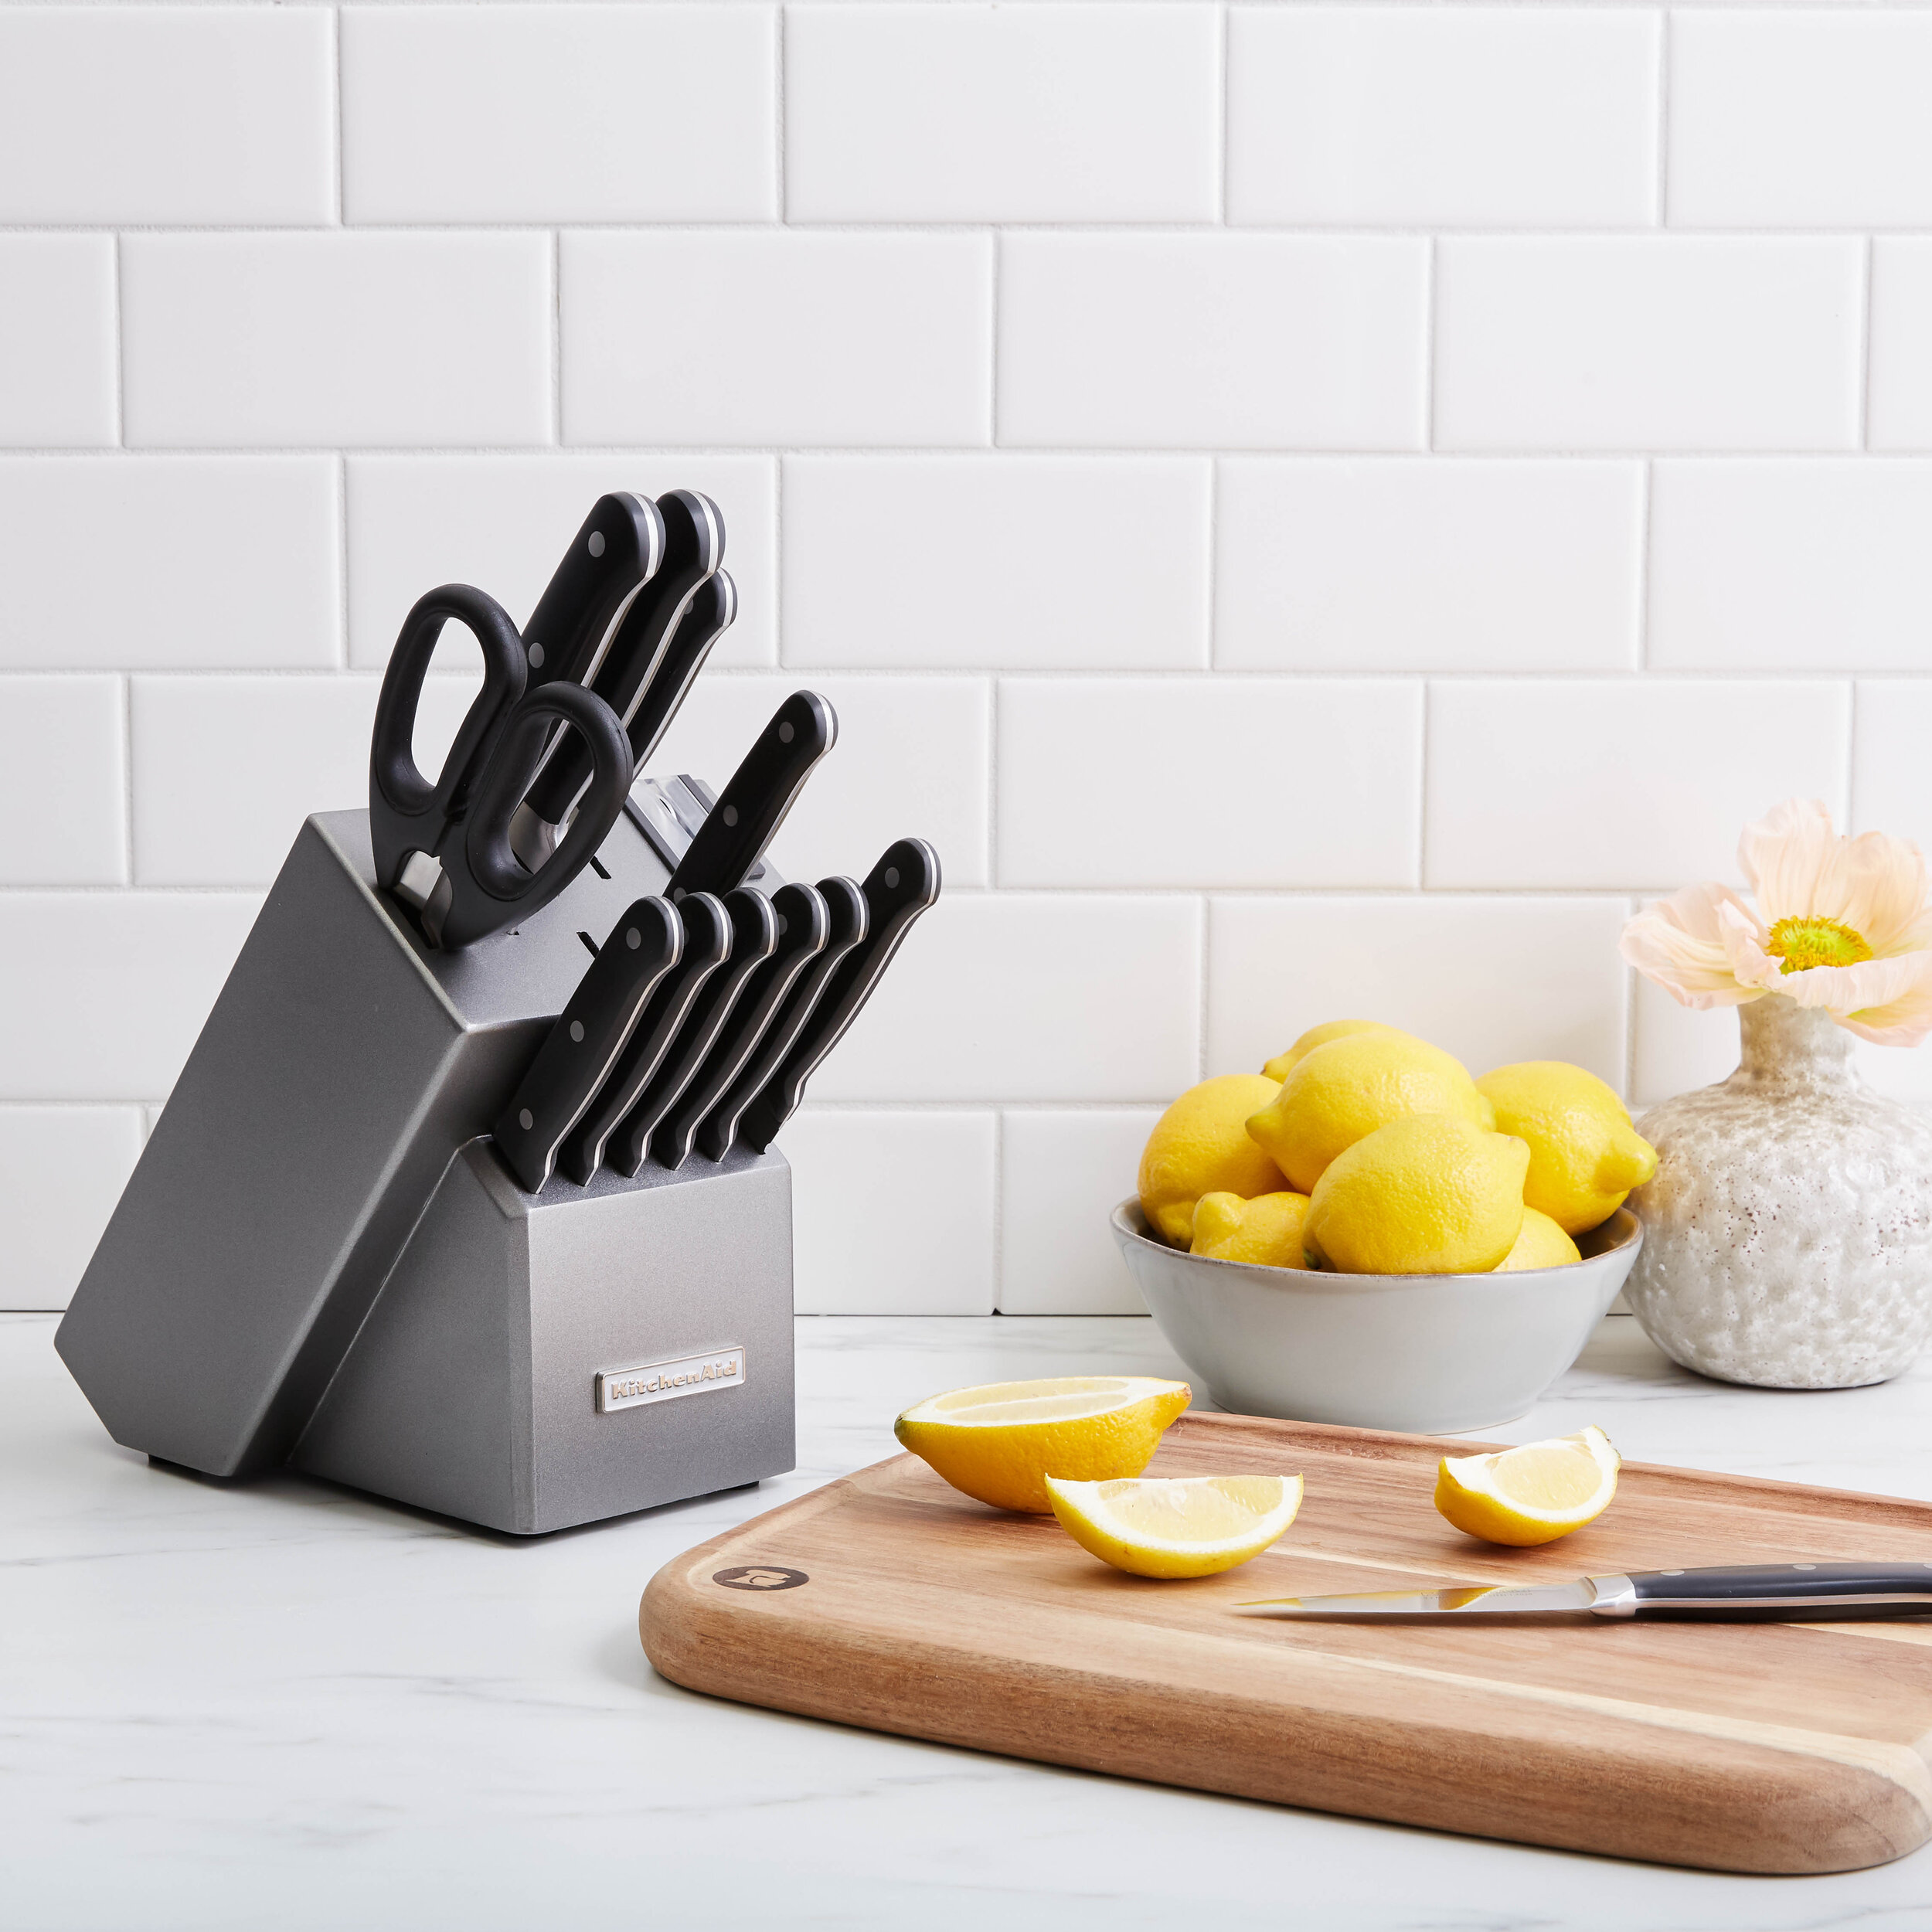 KitchenAid for Zola Product Imagery 2019